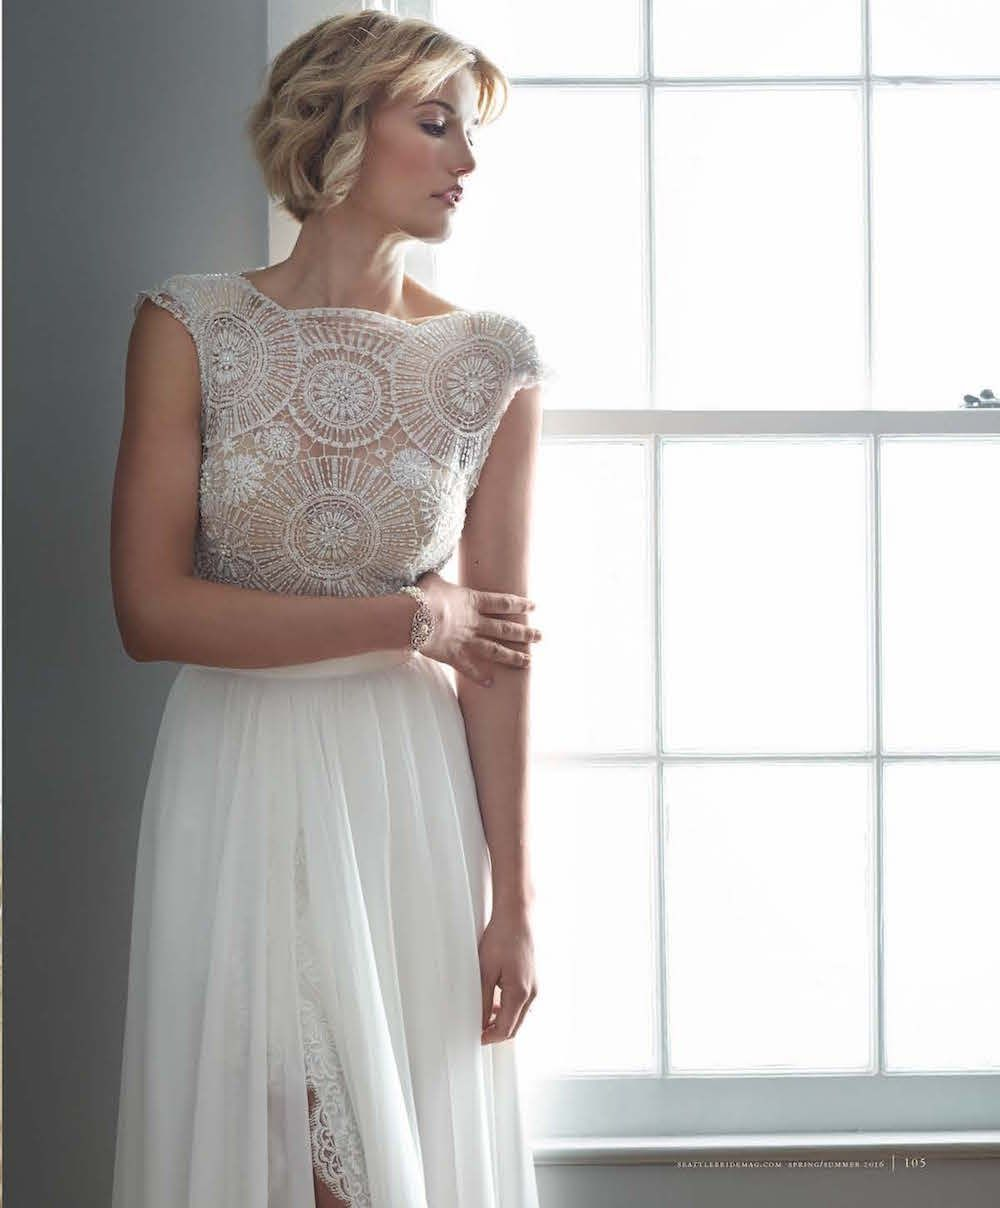 SeattleBride Features #hermosa by #julievino and #paradisocouture ...